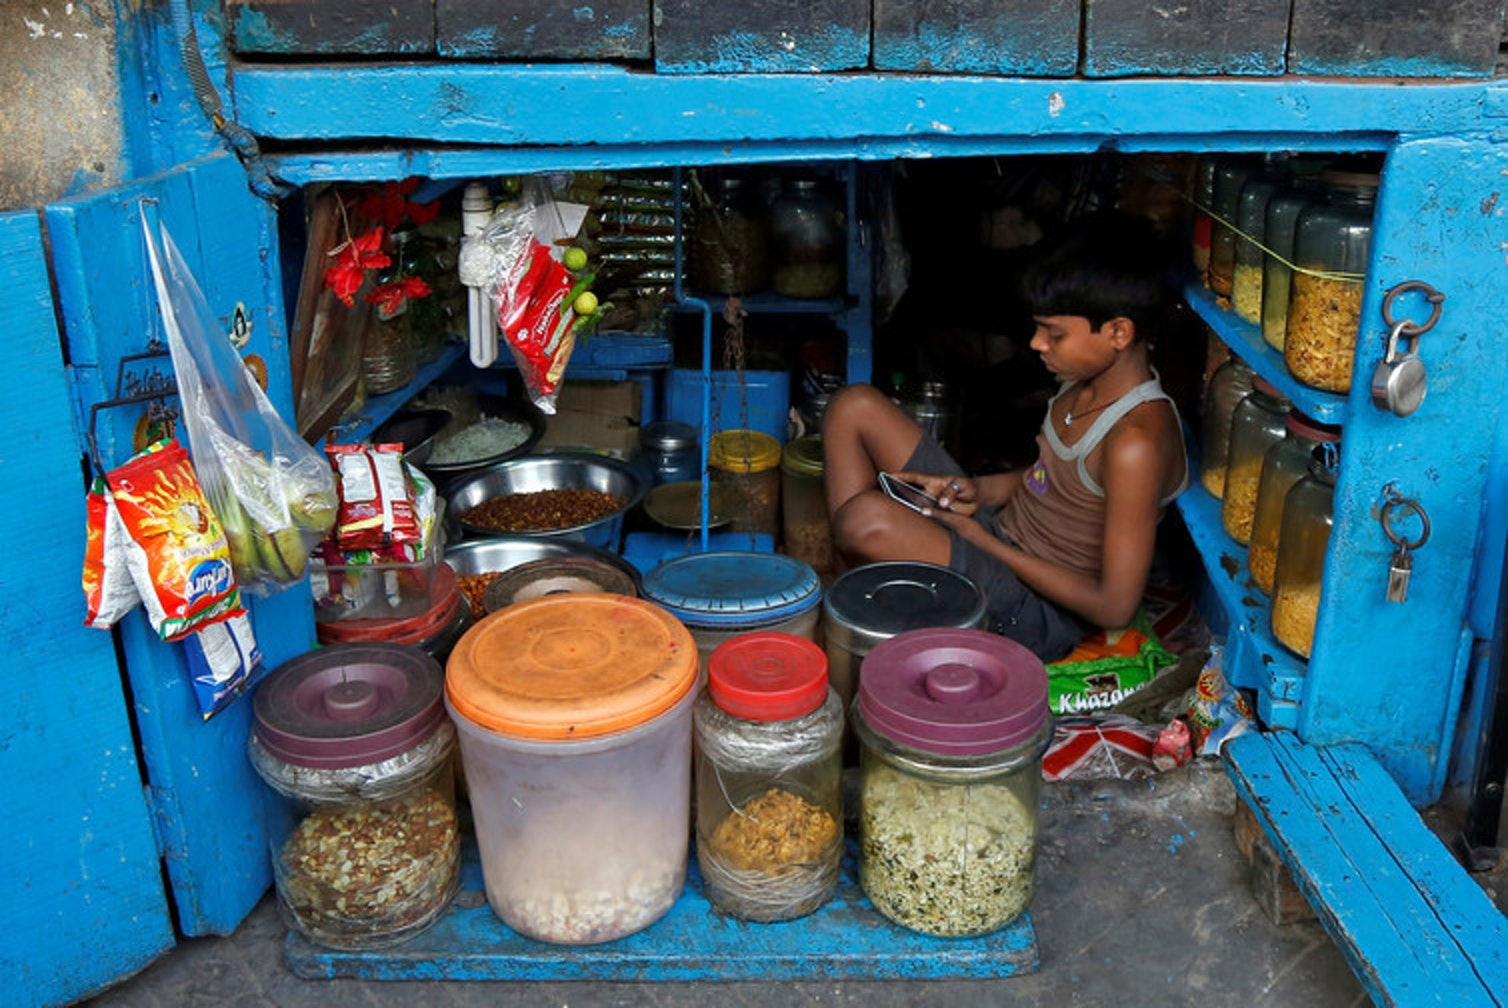 Half of Indian households has access to a mobile phone despite lacking other infrastructure.